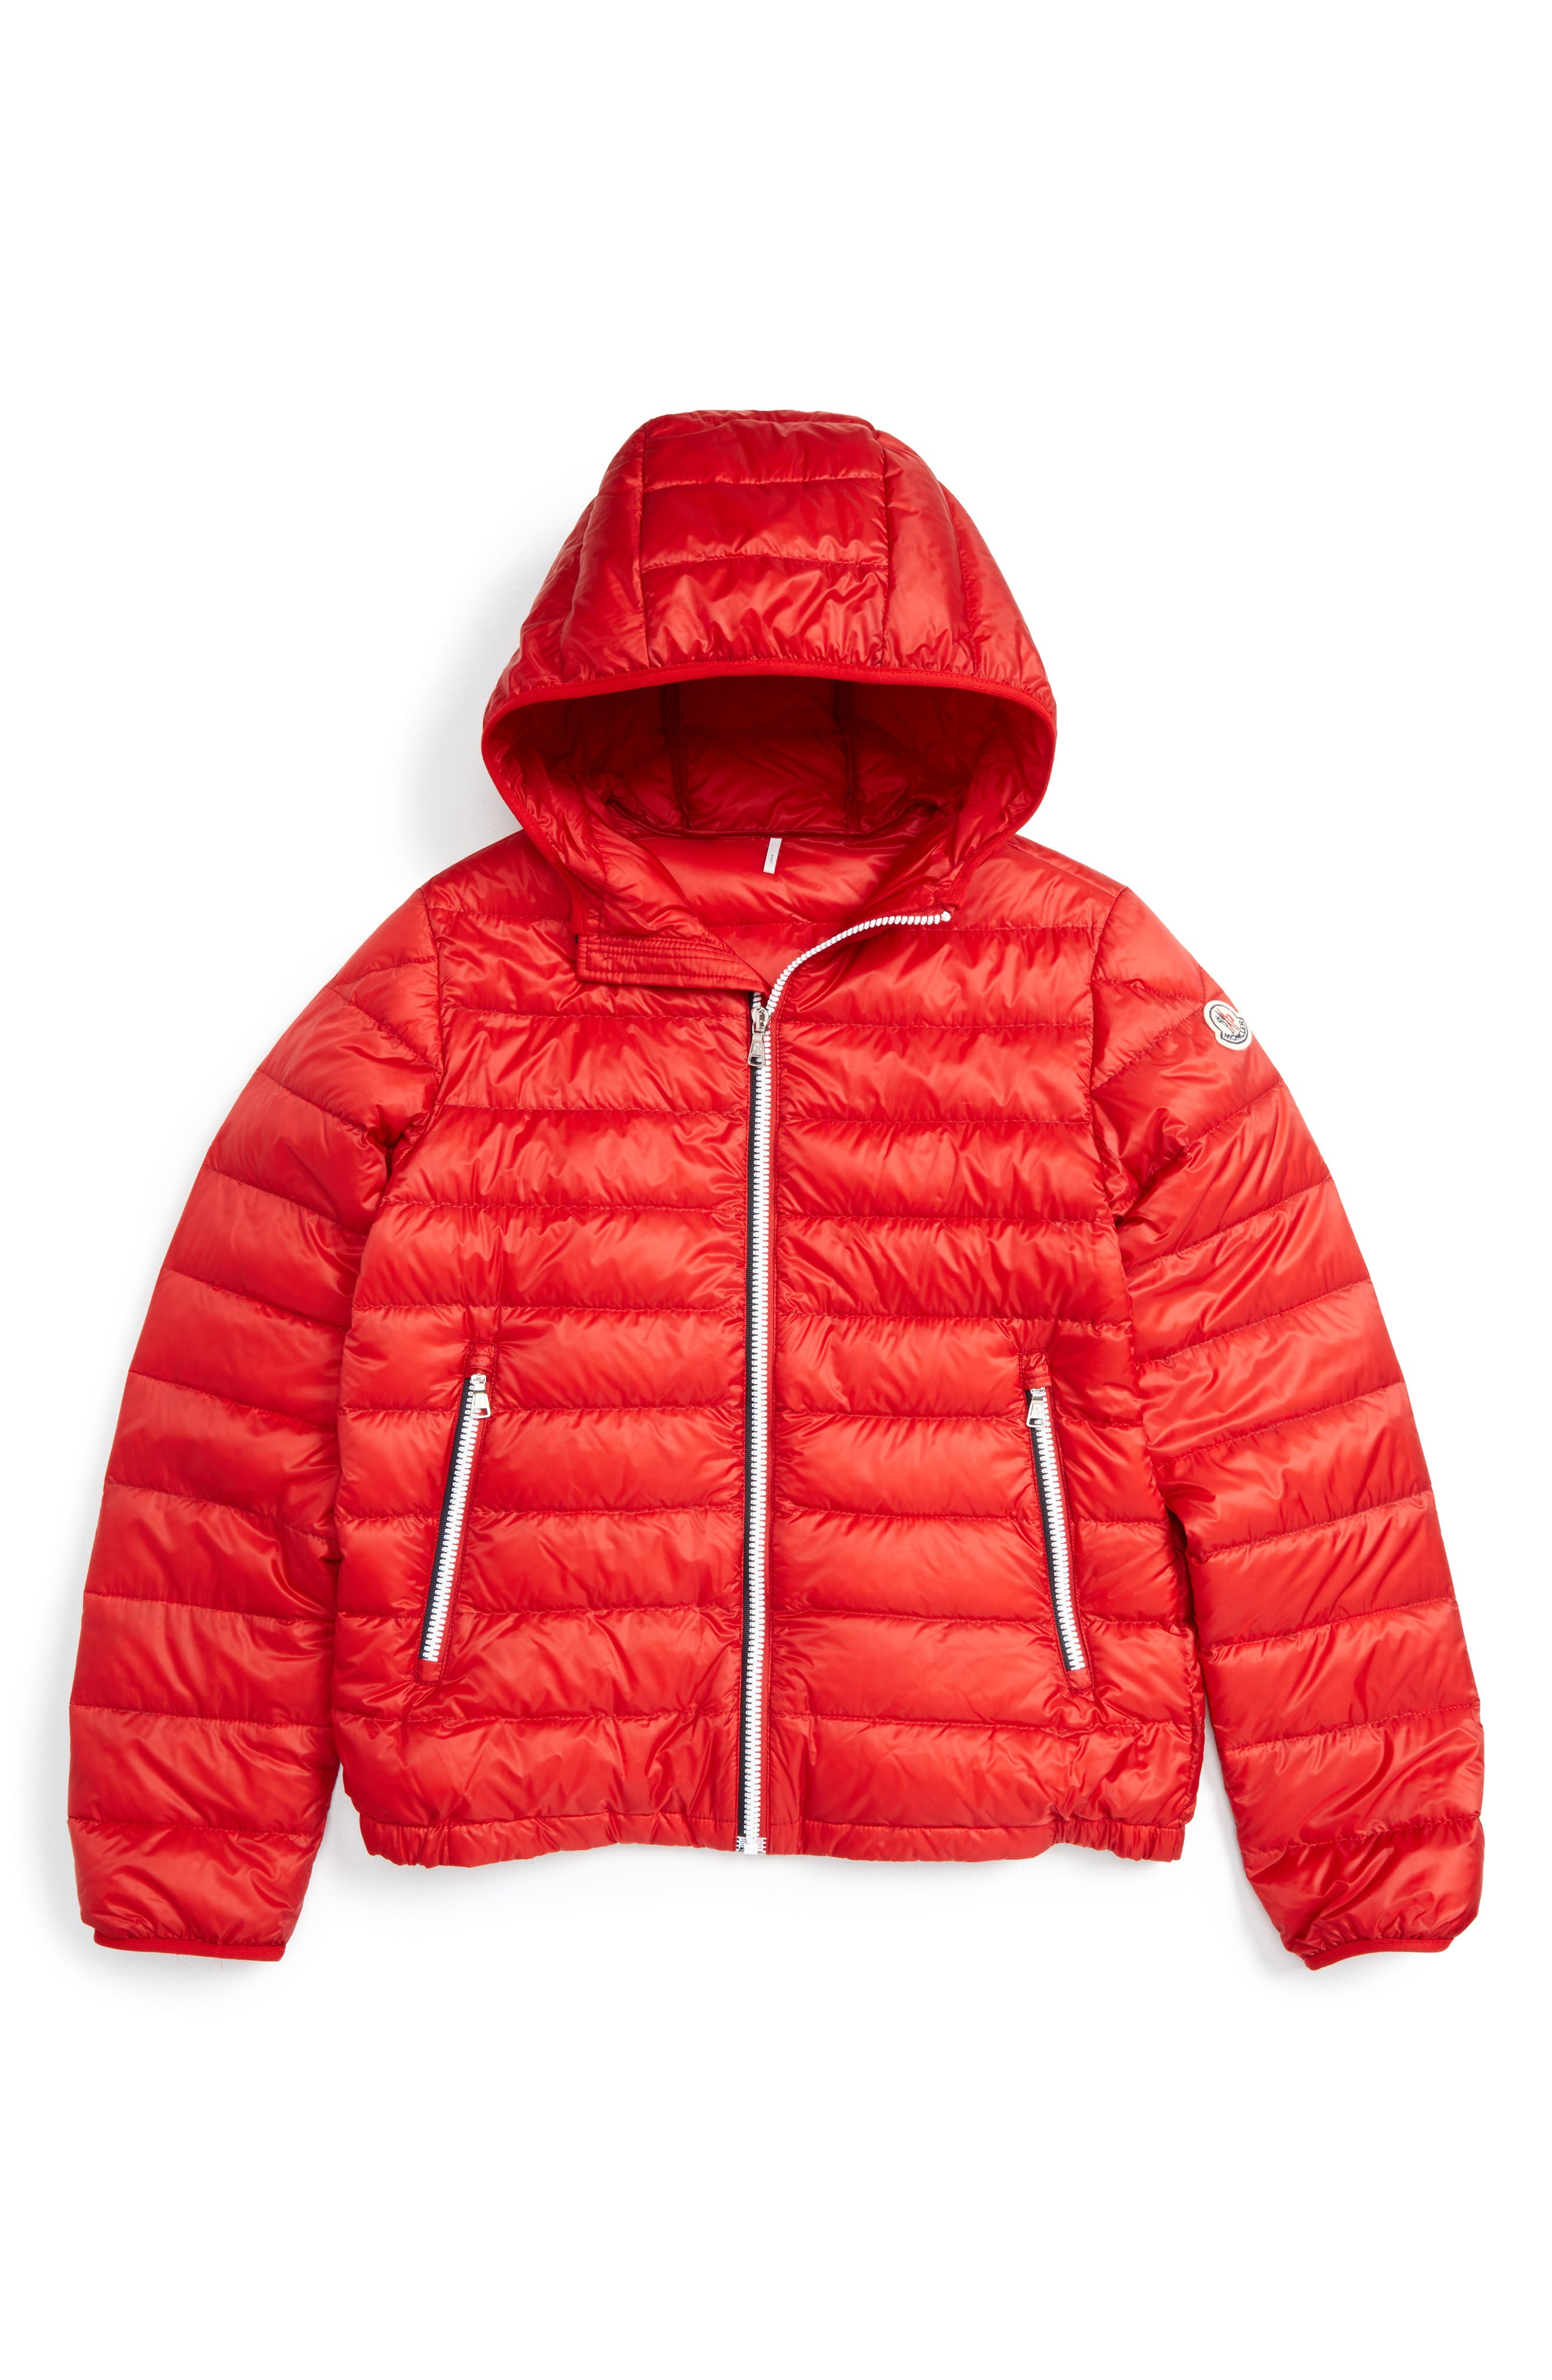 Athenes Water Resistant Hooded Down Jacket,                         Main,                         color, Red